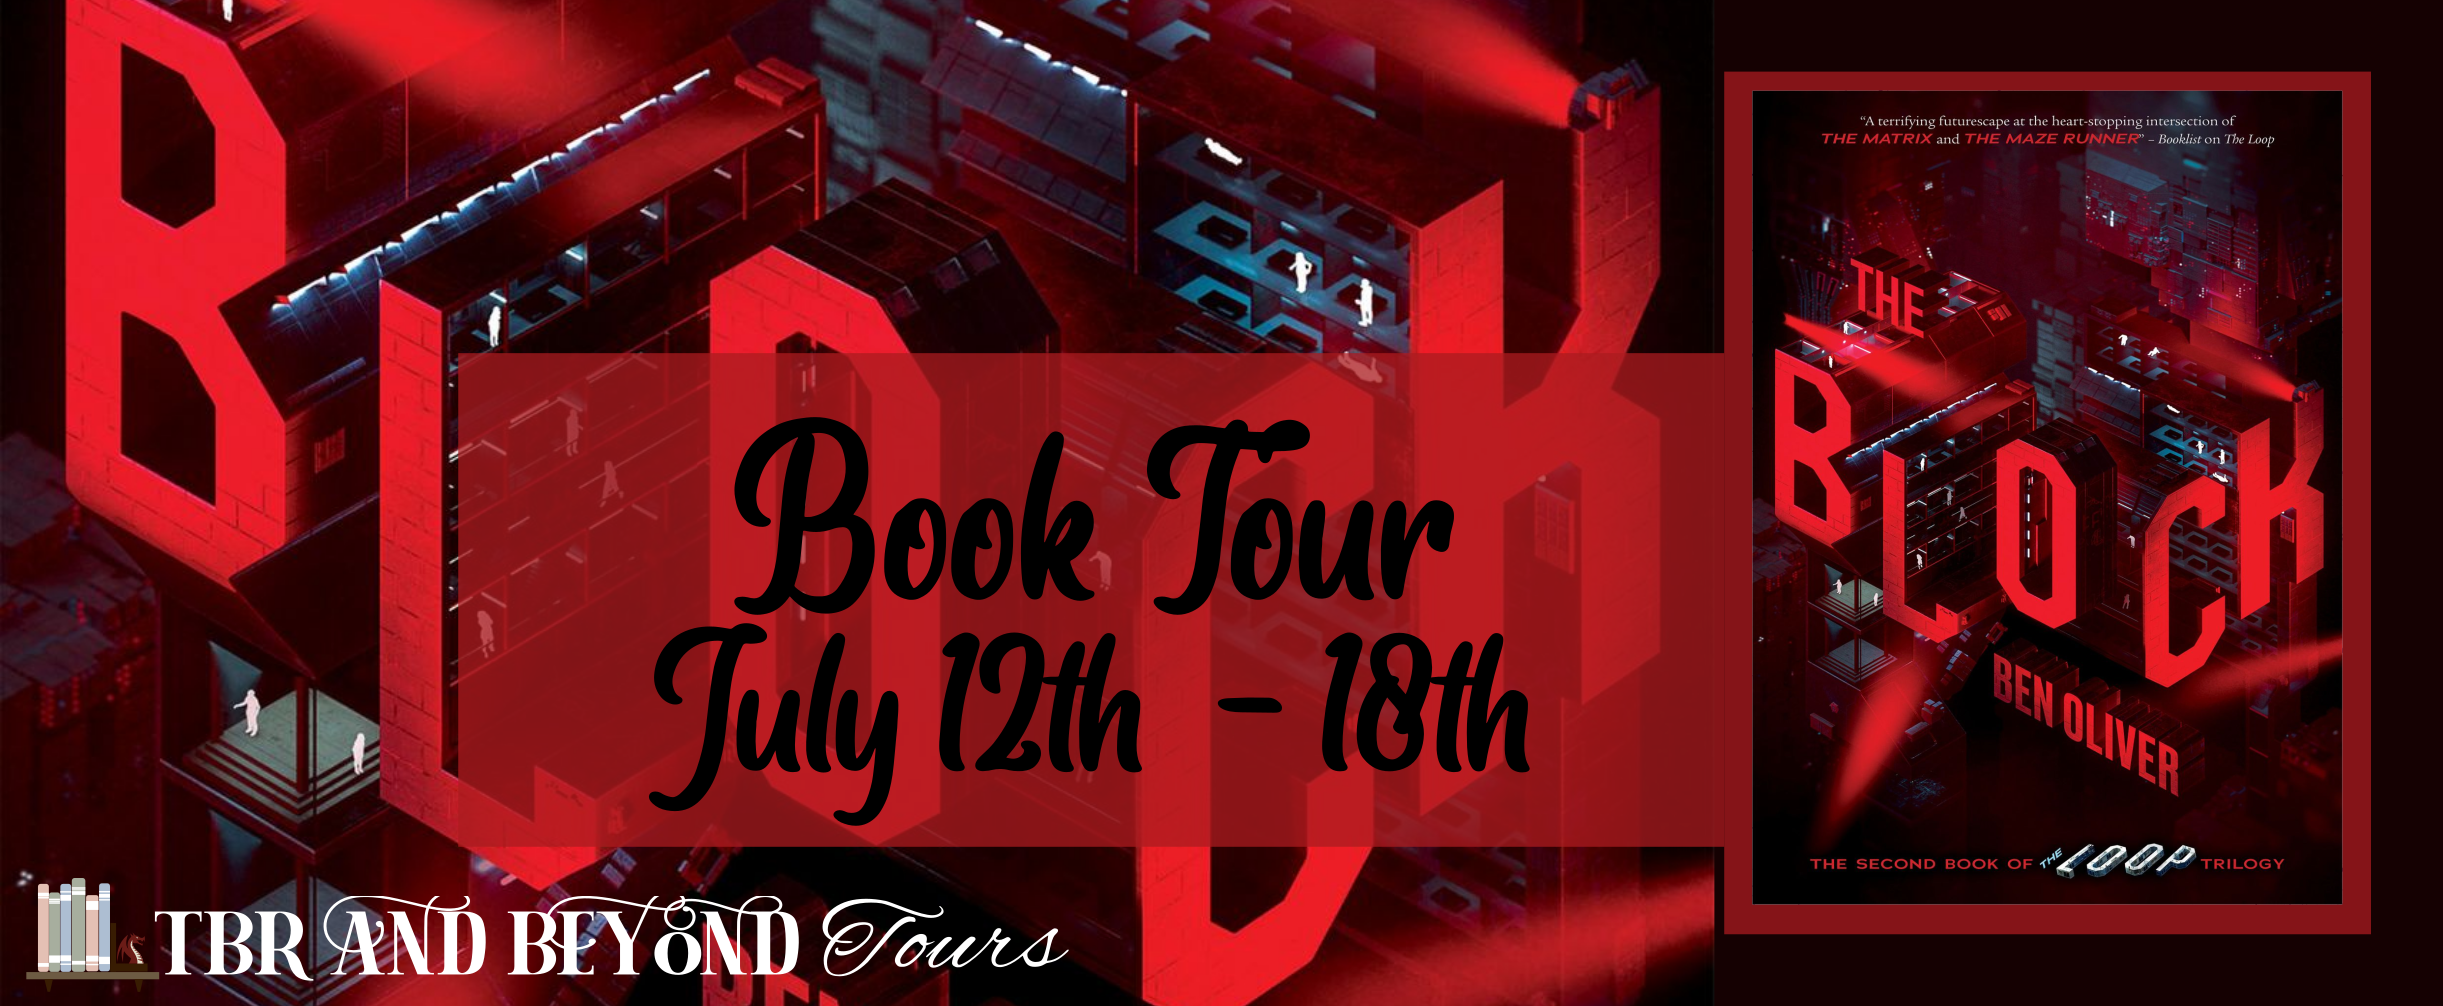 Blog Tour: The Block by Ben Oliver (Interview + Giveaway!)